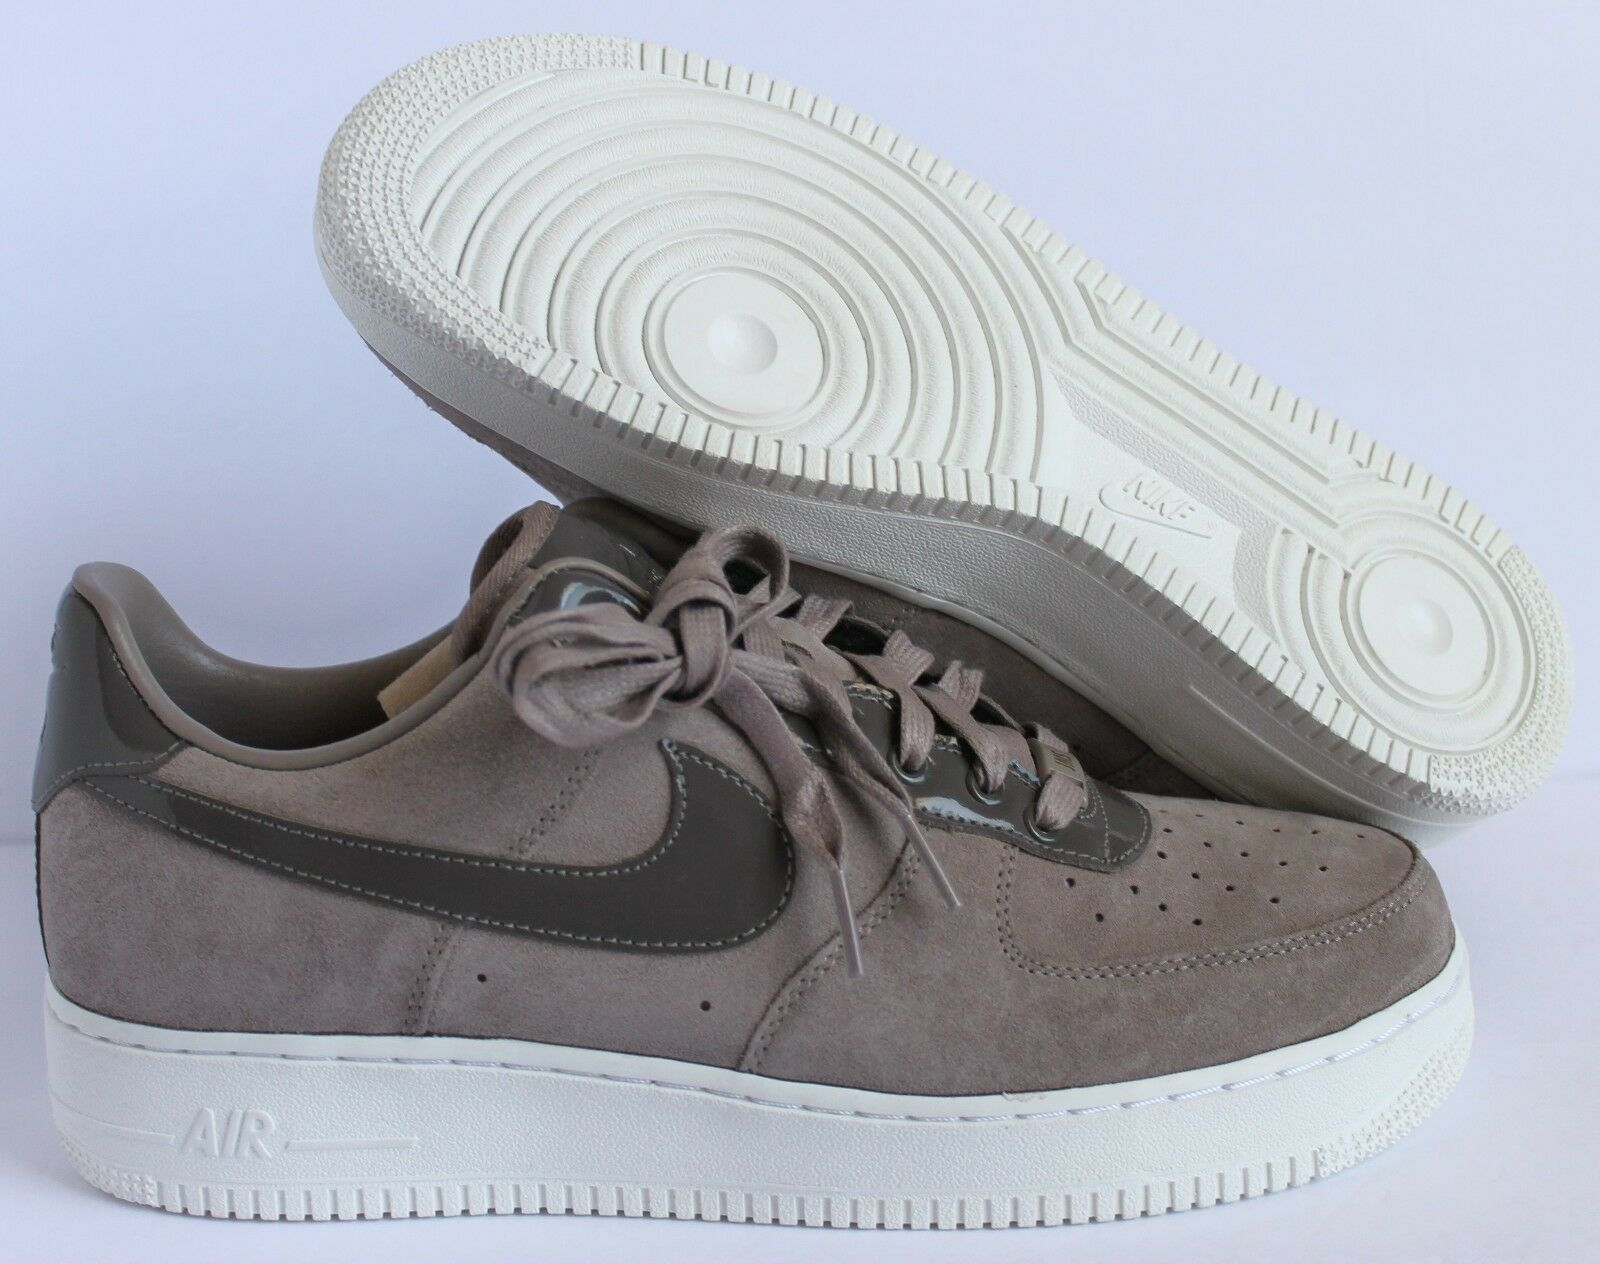 Nike Air Force One Low Suede ID Brown-White Men's 10.5 [AQ3661-991]